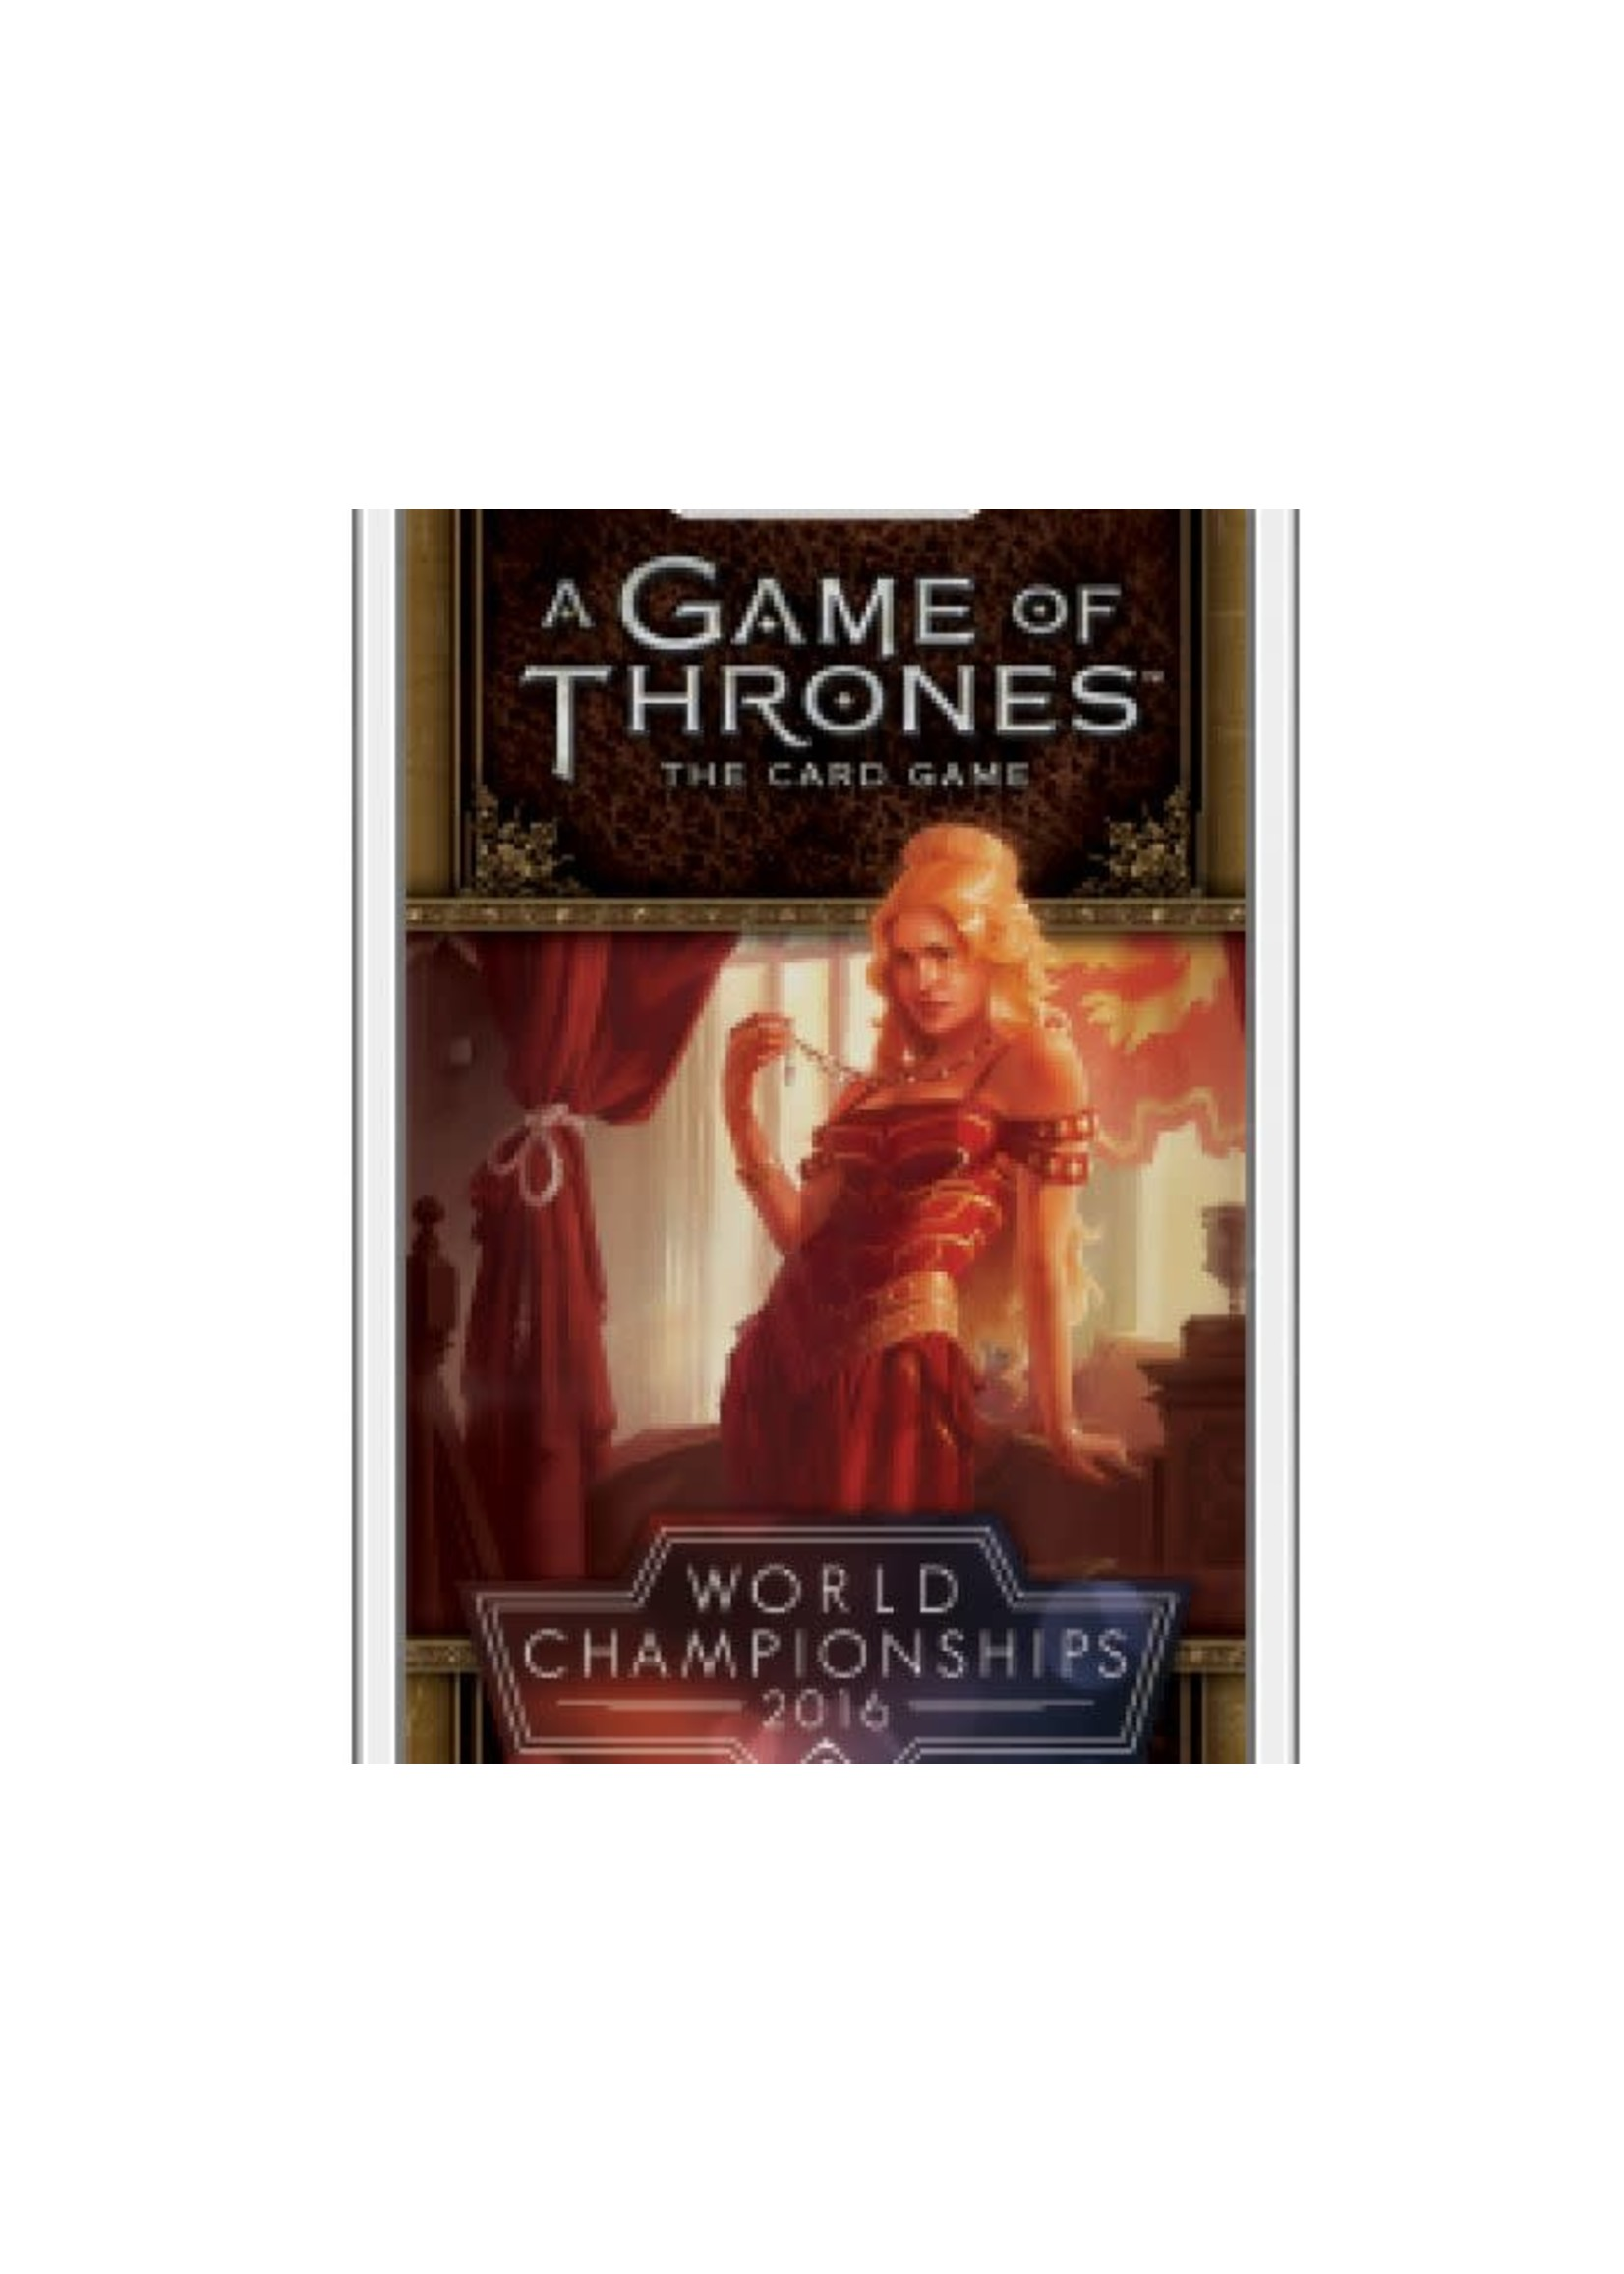 Game Of Thrones Lcg 2Nd Ed World Championship Deck 2016